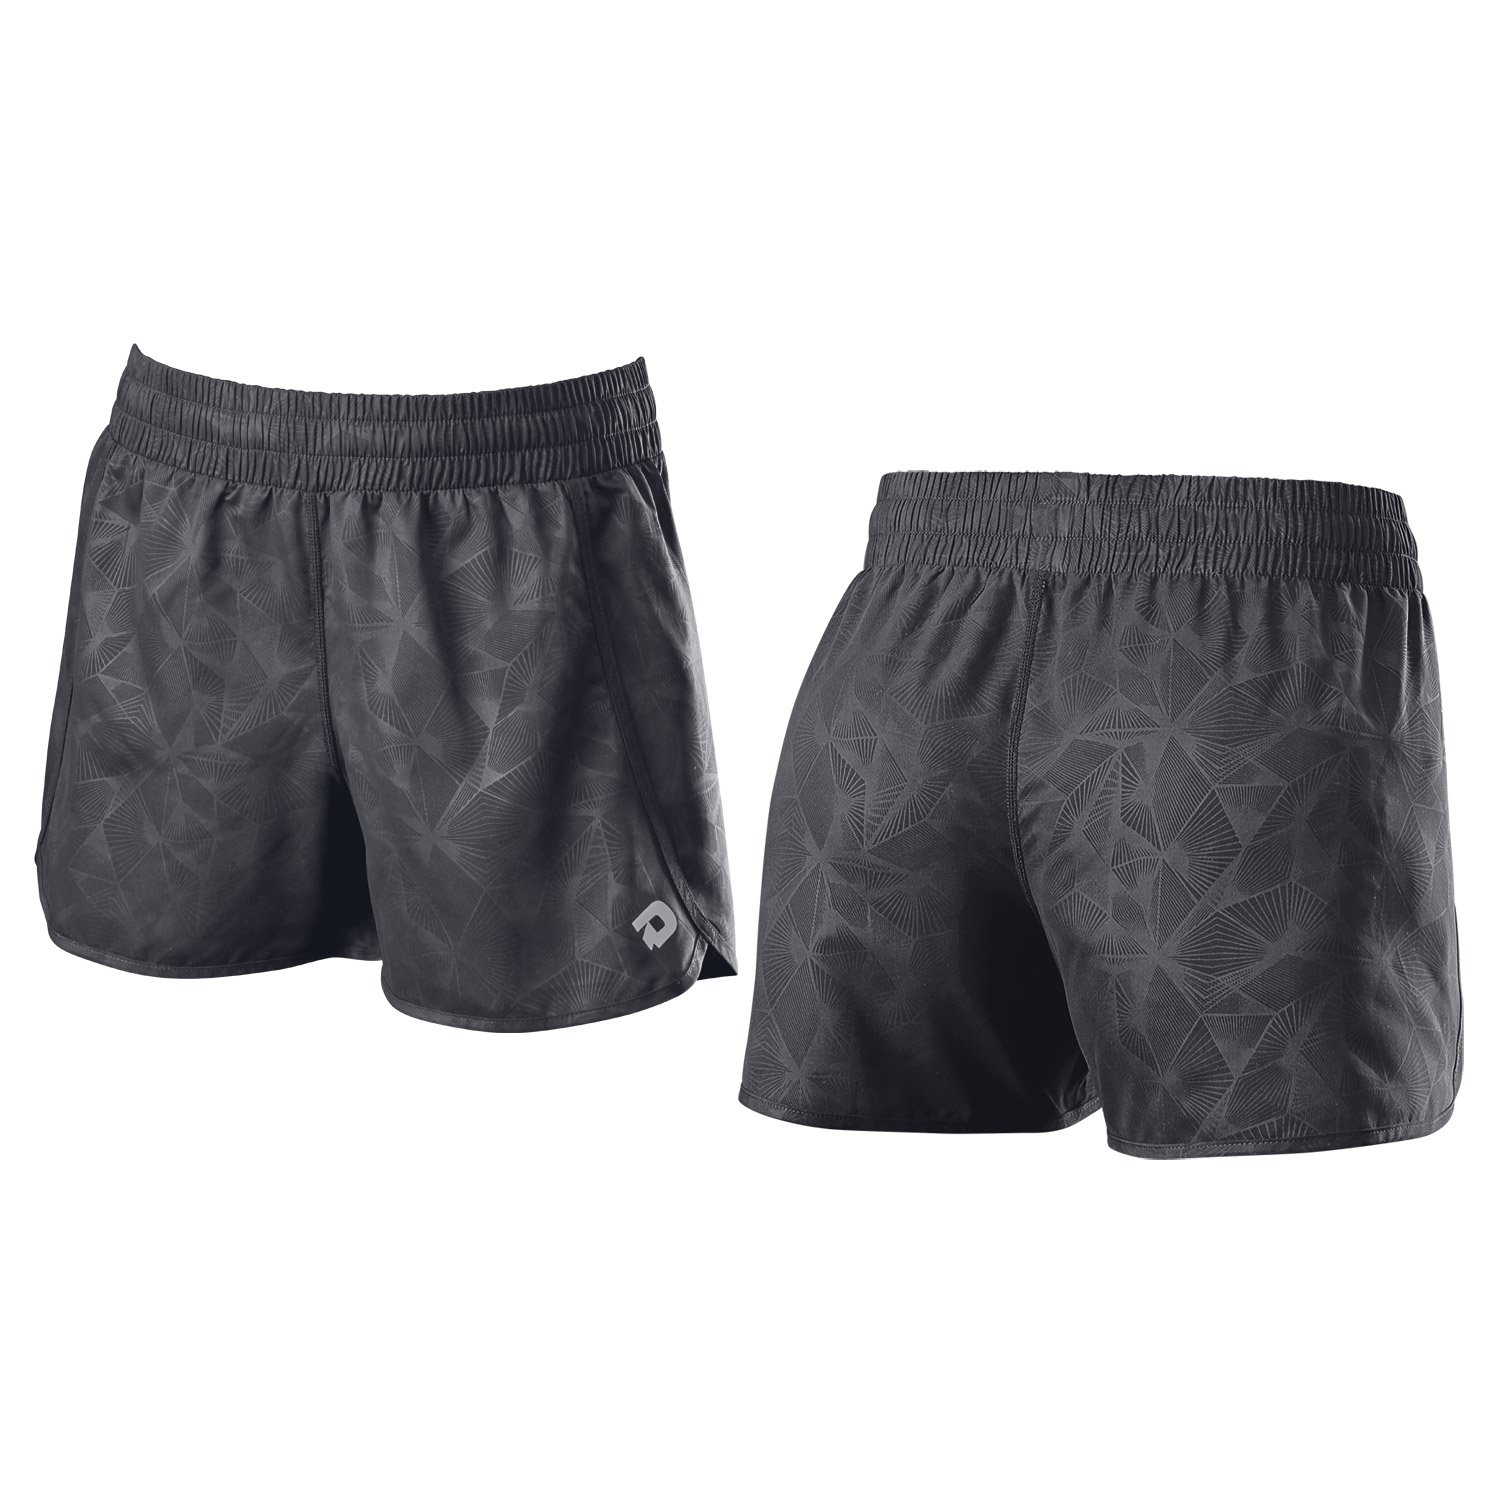 DeMarini Womens Training Shorts - Womens, Charcoal, XX-Large